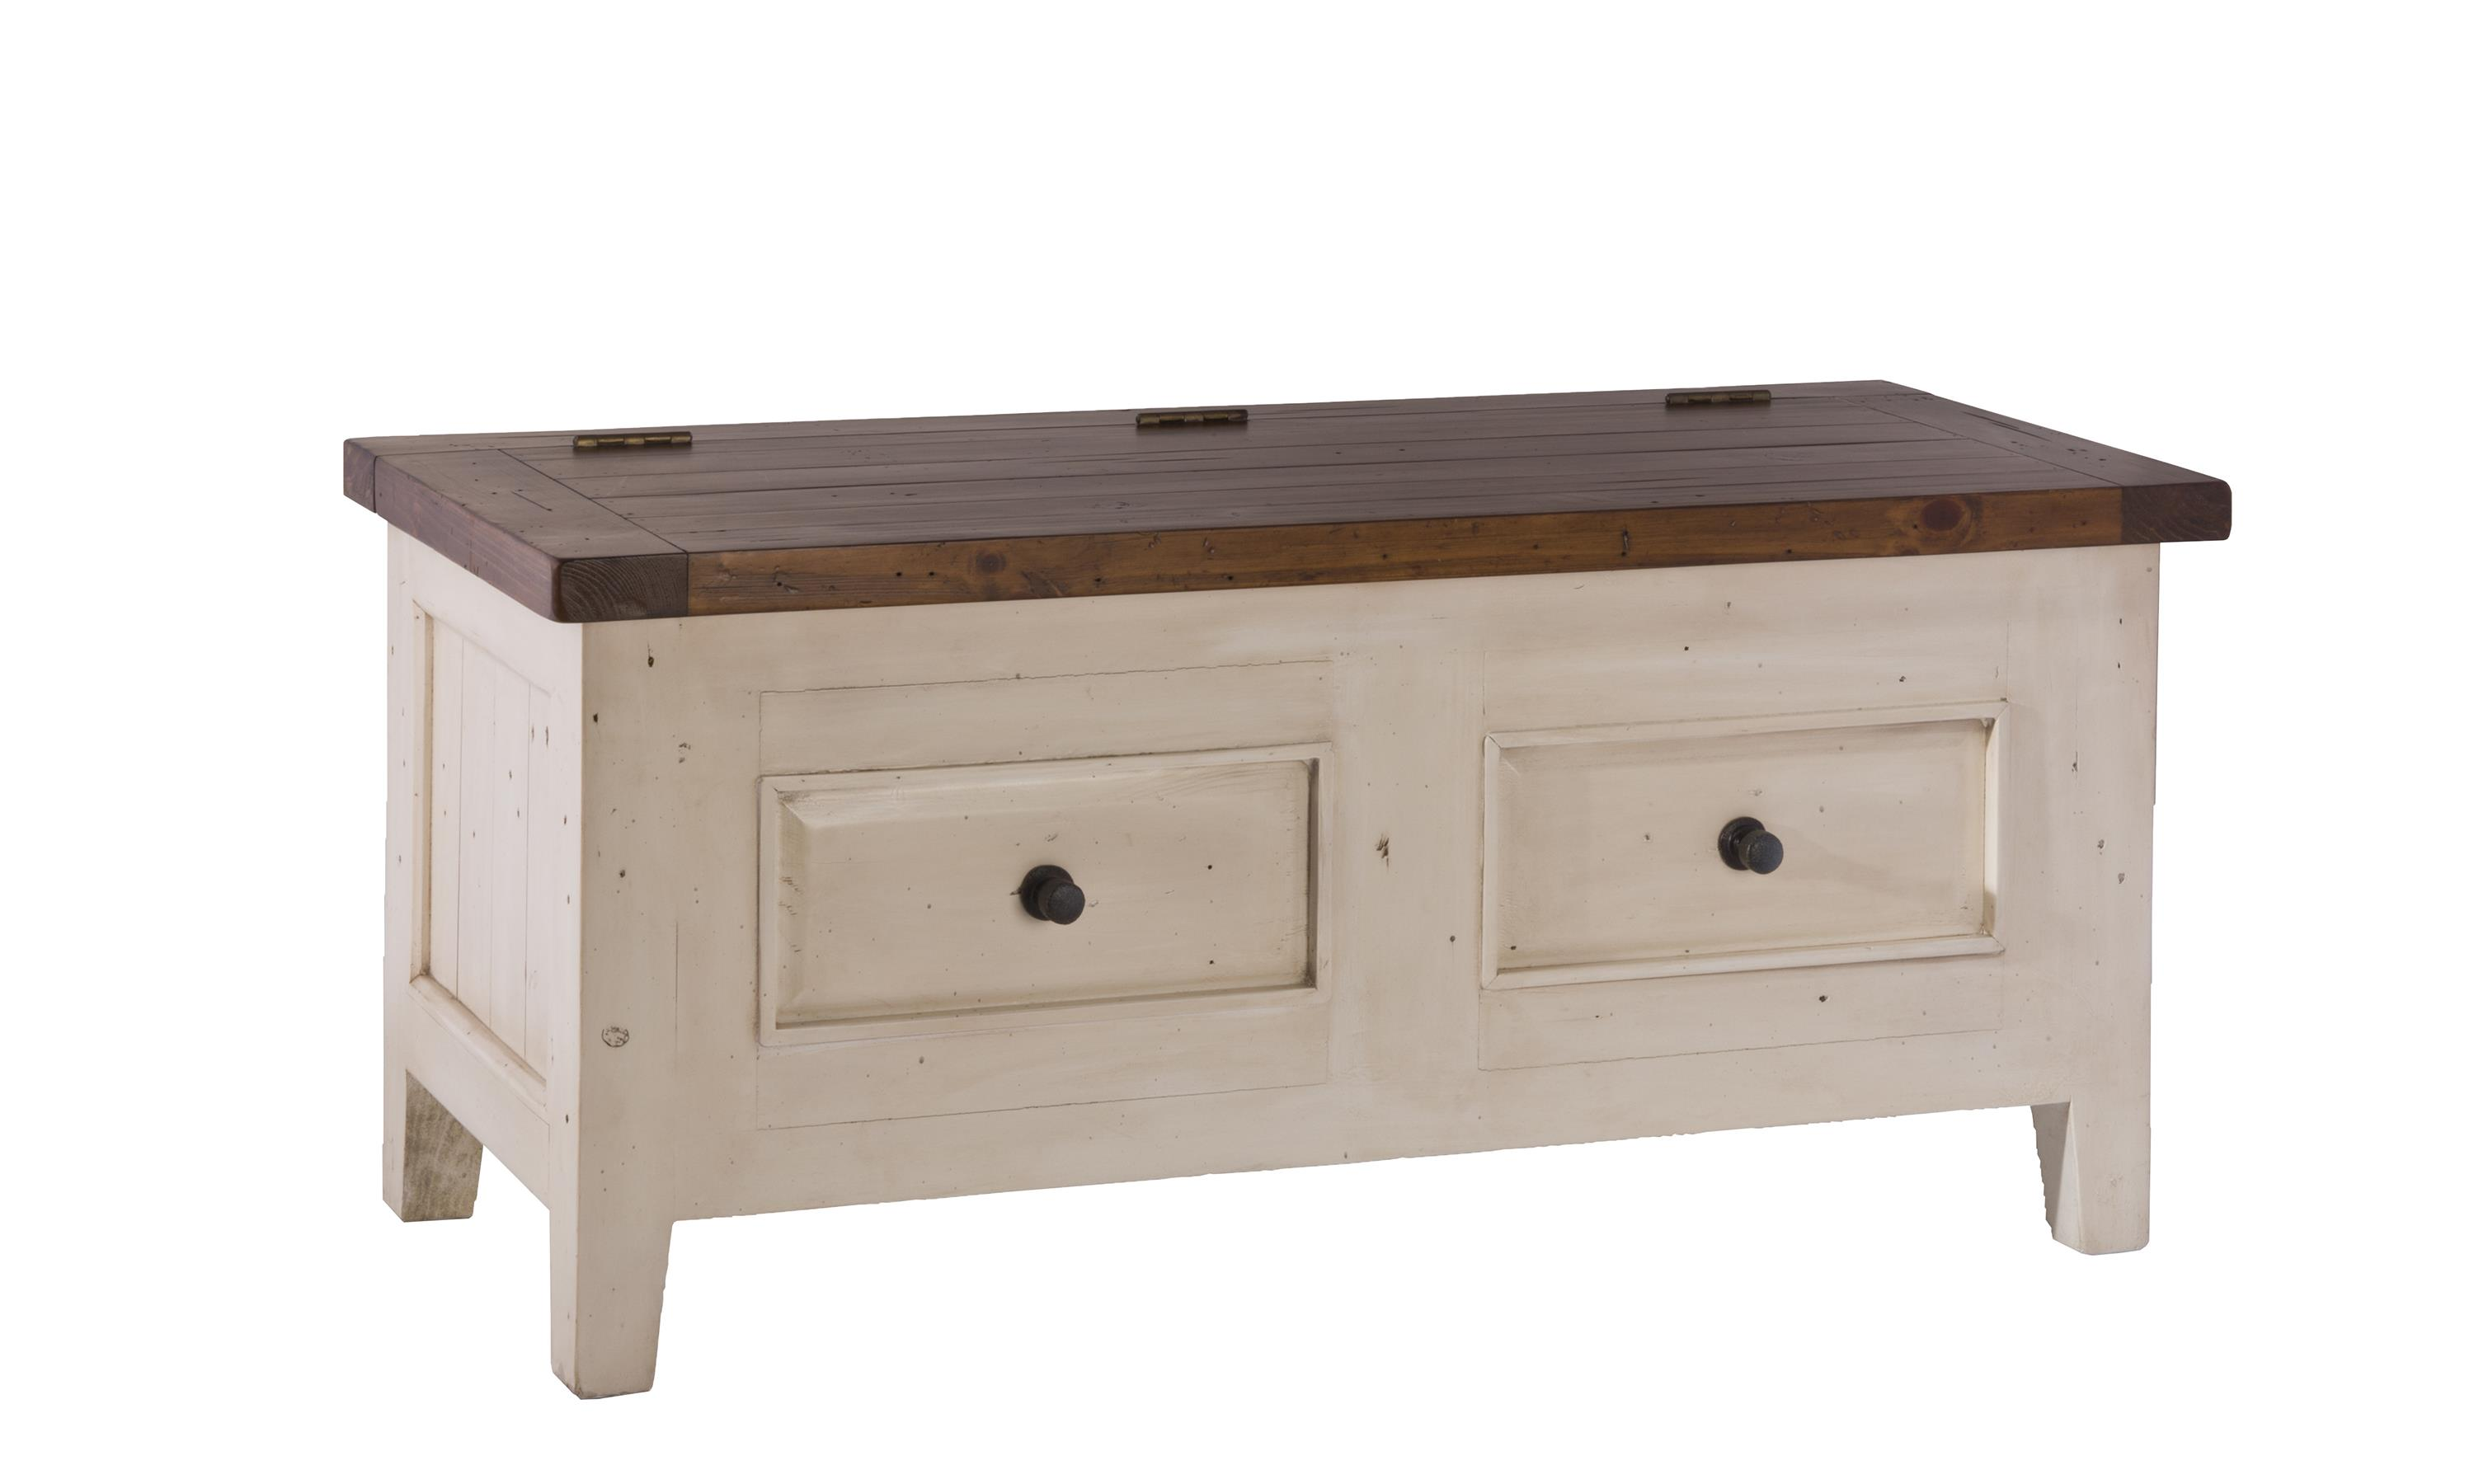 Hillsdale Tuscan Retreat Blanket Box with Lift Top  - Item Number: 5465-790W